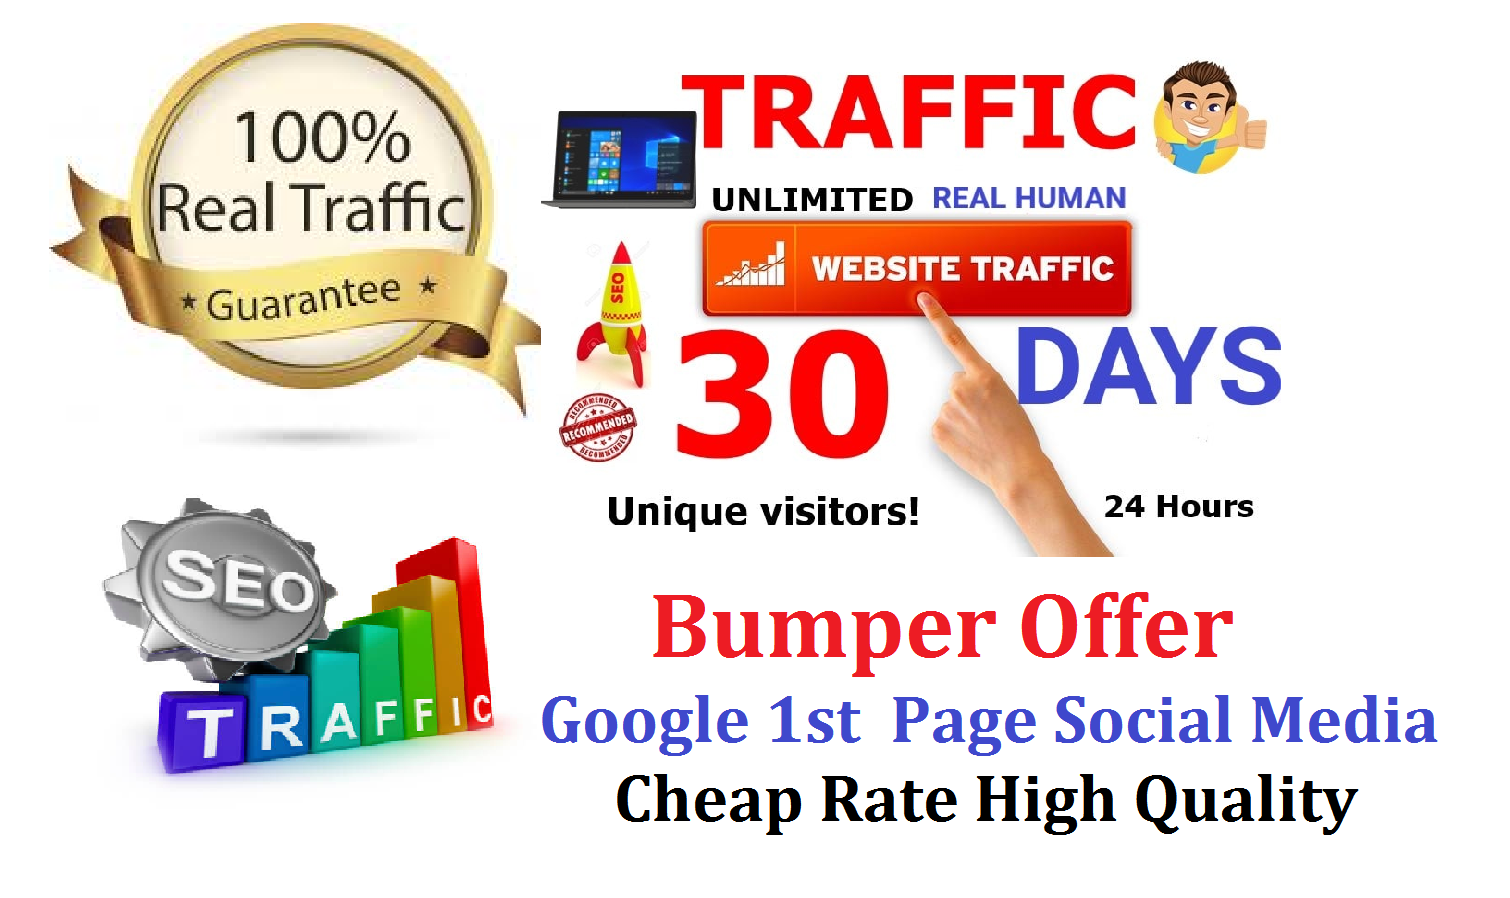 Bumper Offer 300,000 Worldwide Website USA Real Traffic Instagram, YouTube, Twitter, LinkedIn Traffic